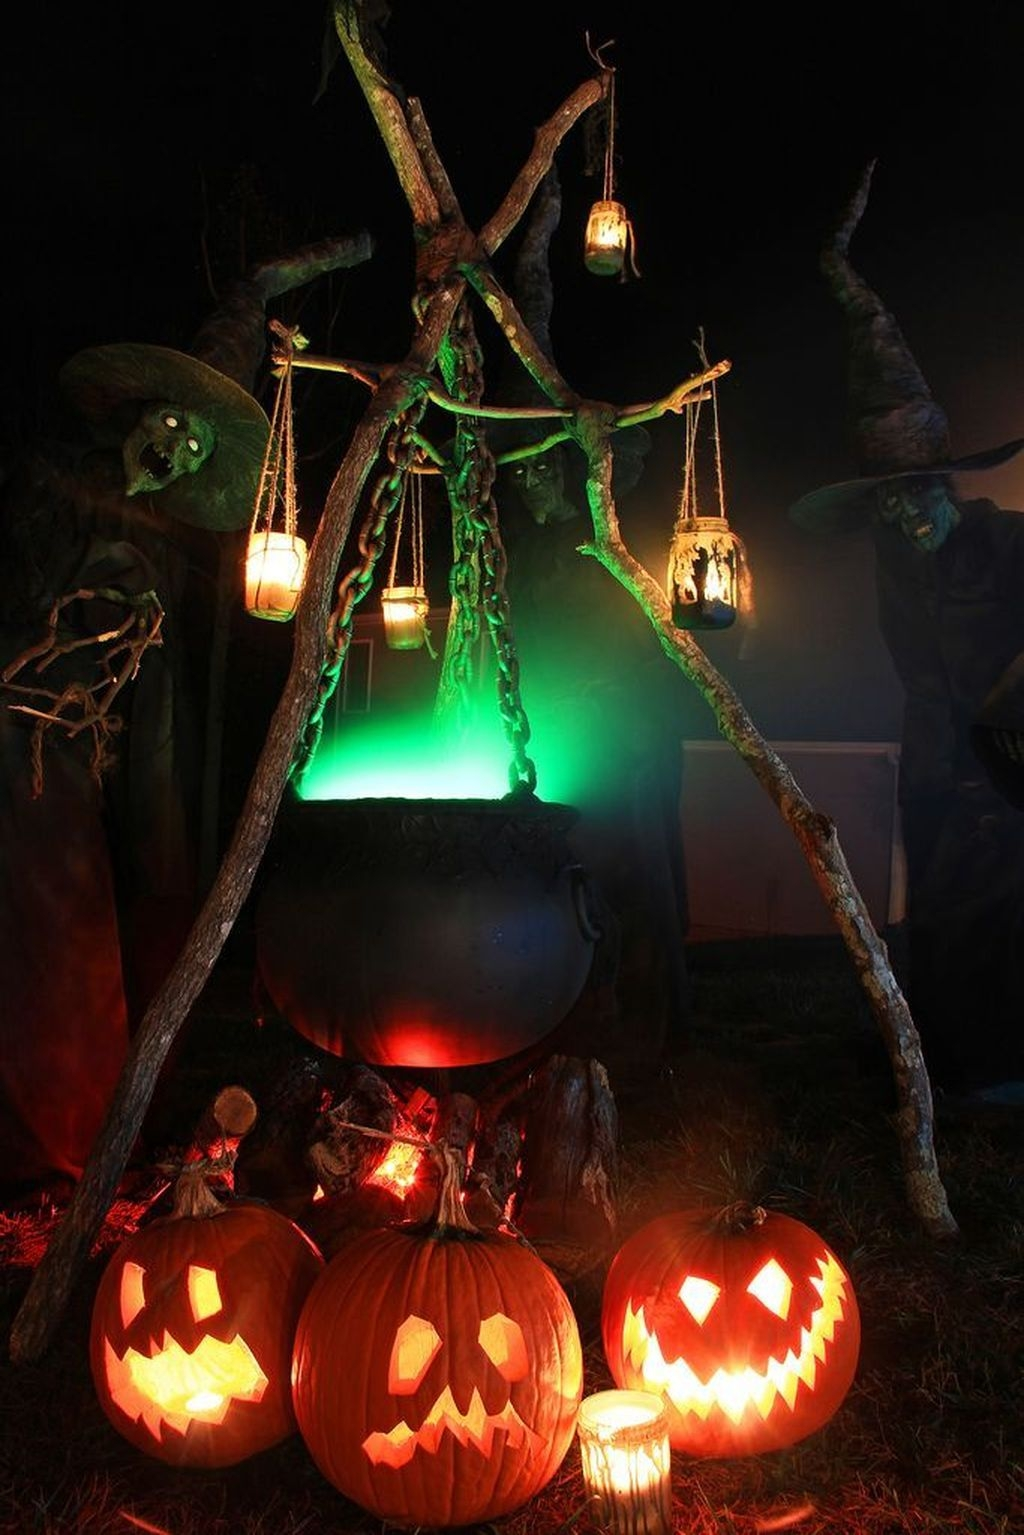 Stylish Wicked Halloween Porch Decorating Ideas On A Budget01